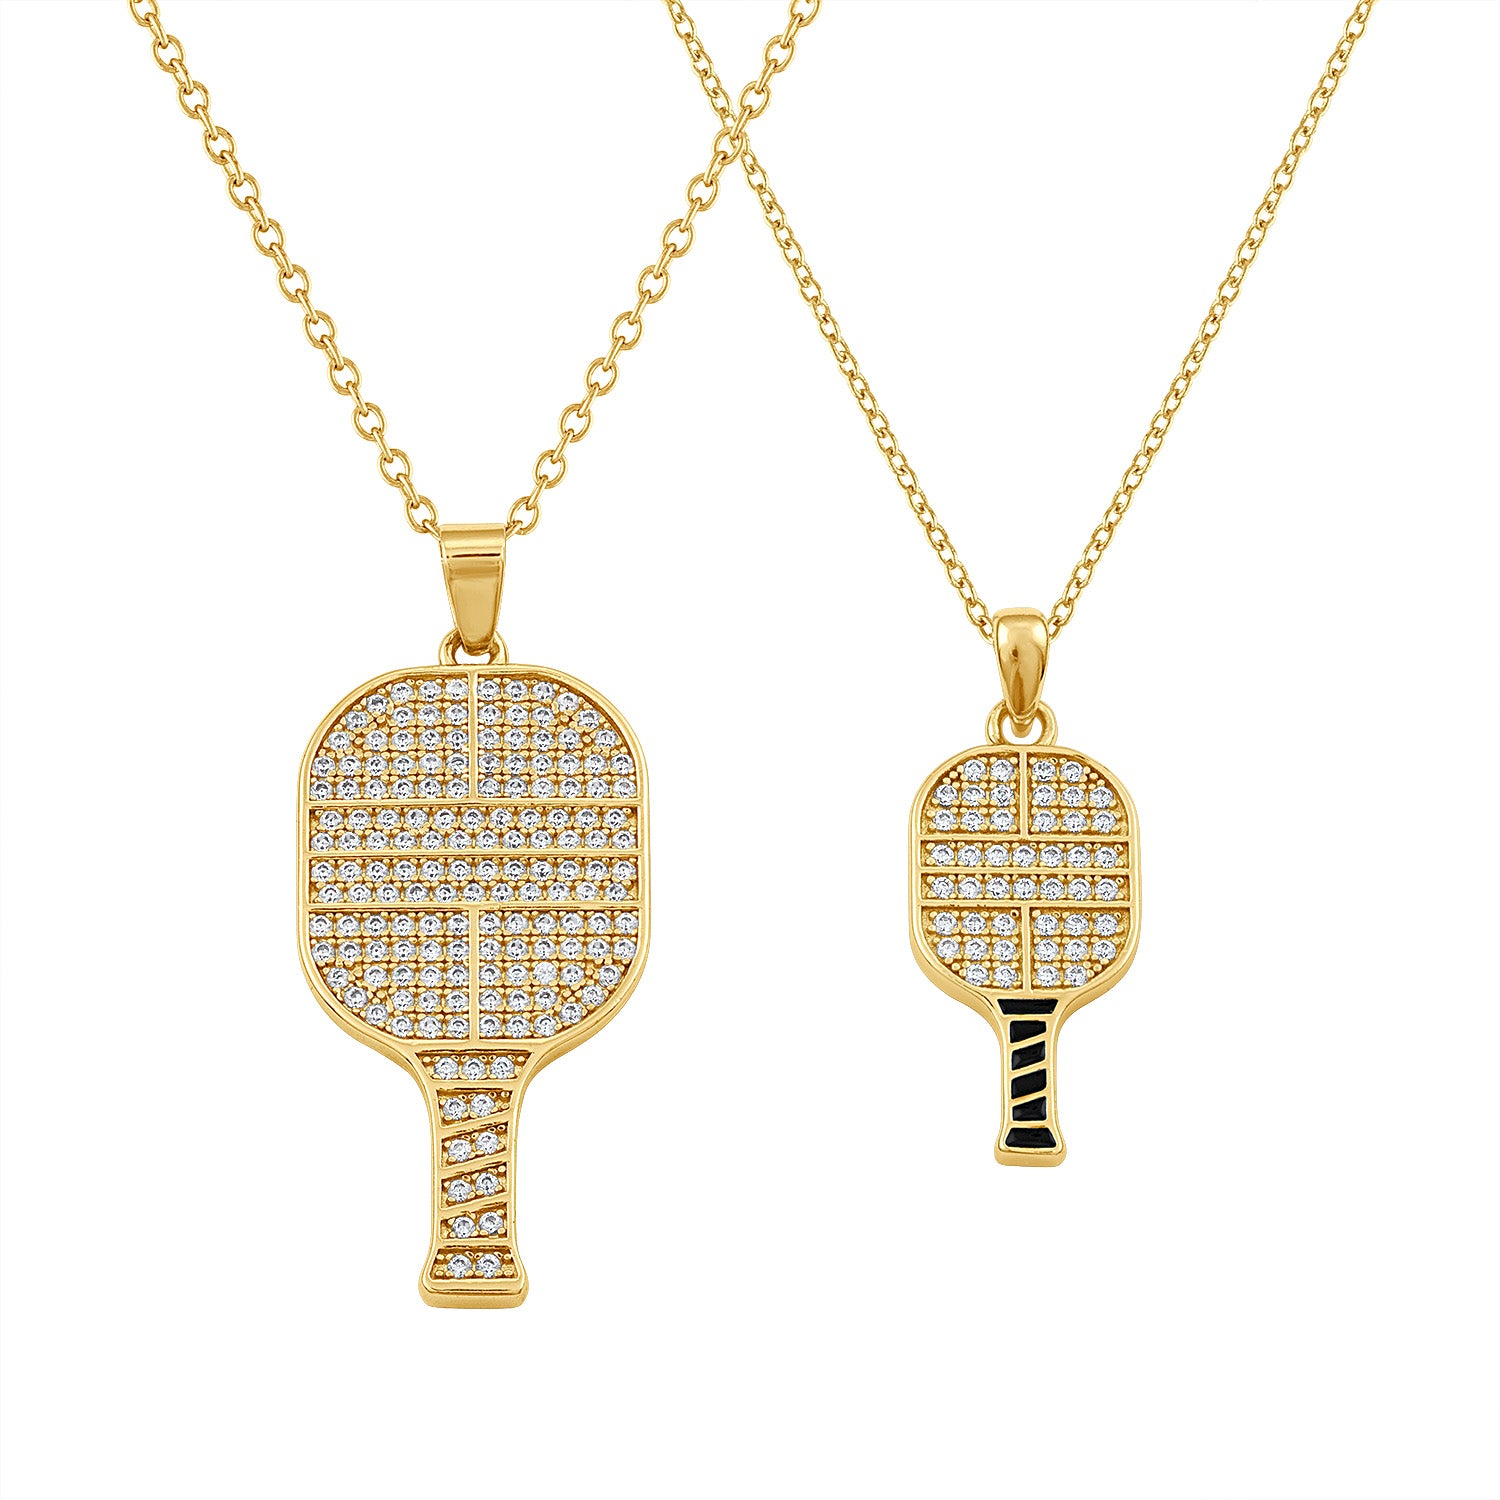 CZ Pickle Paddle Pendant Collection